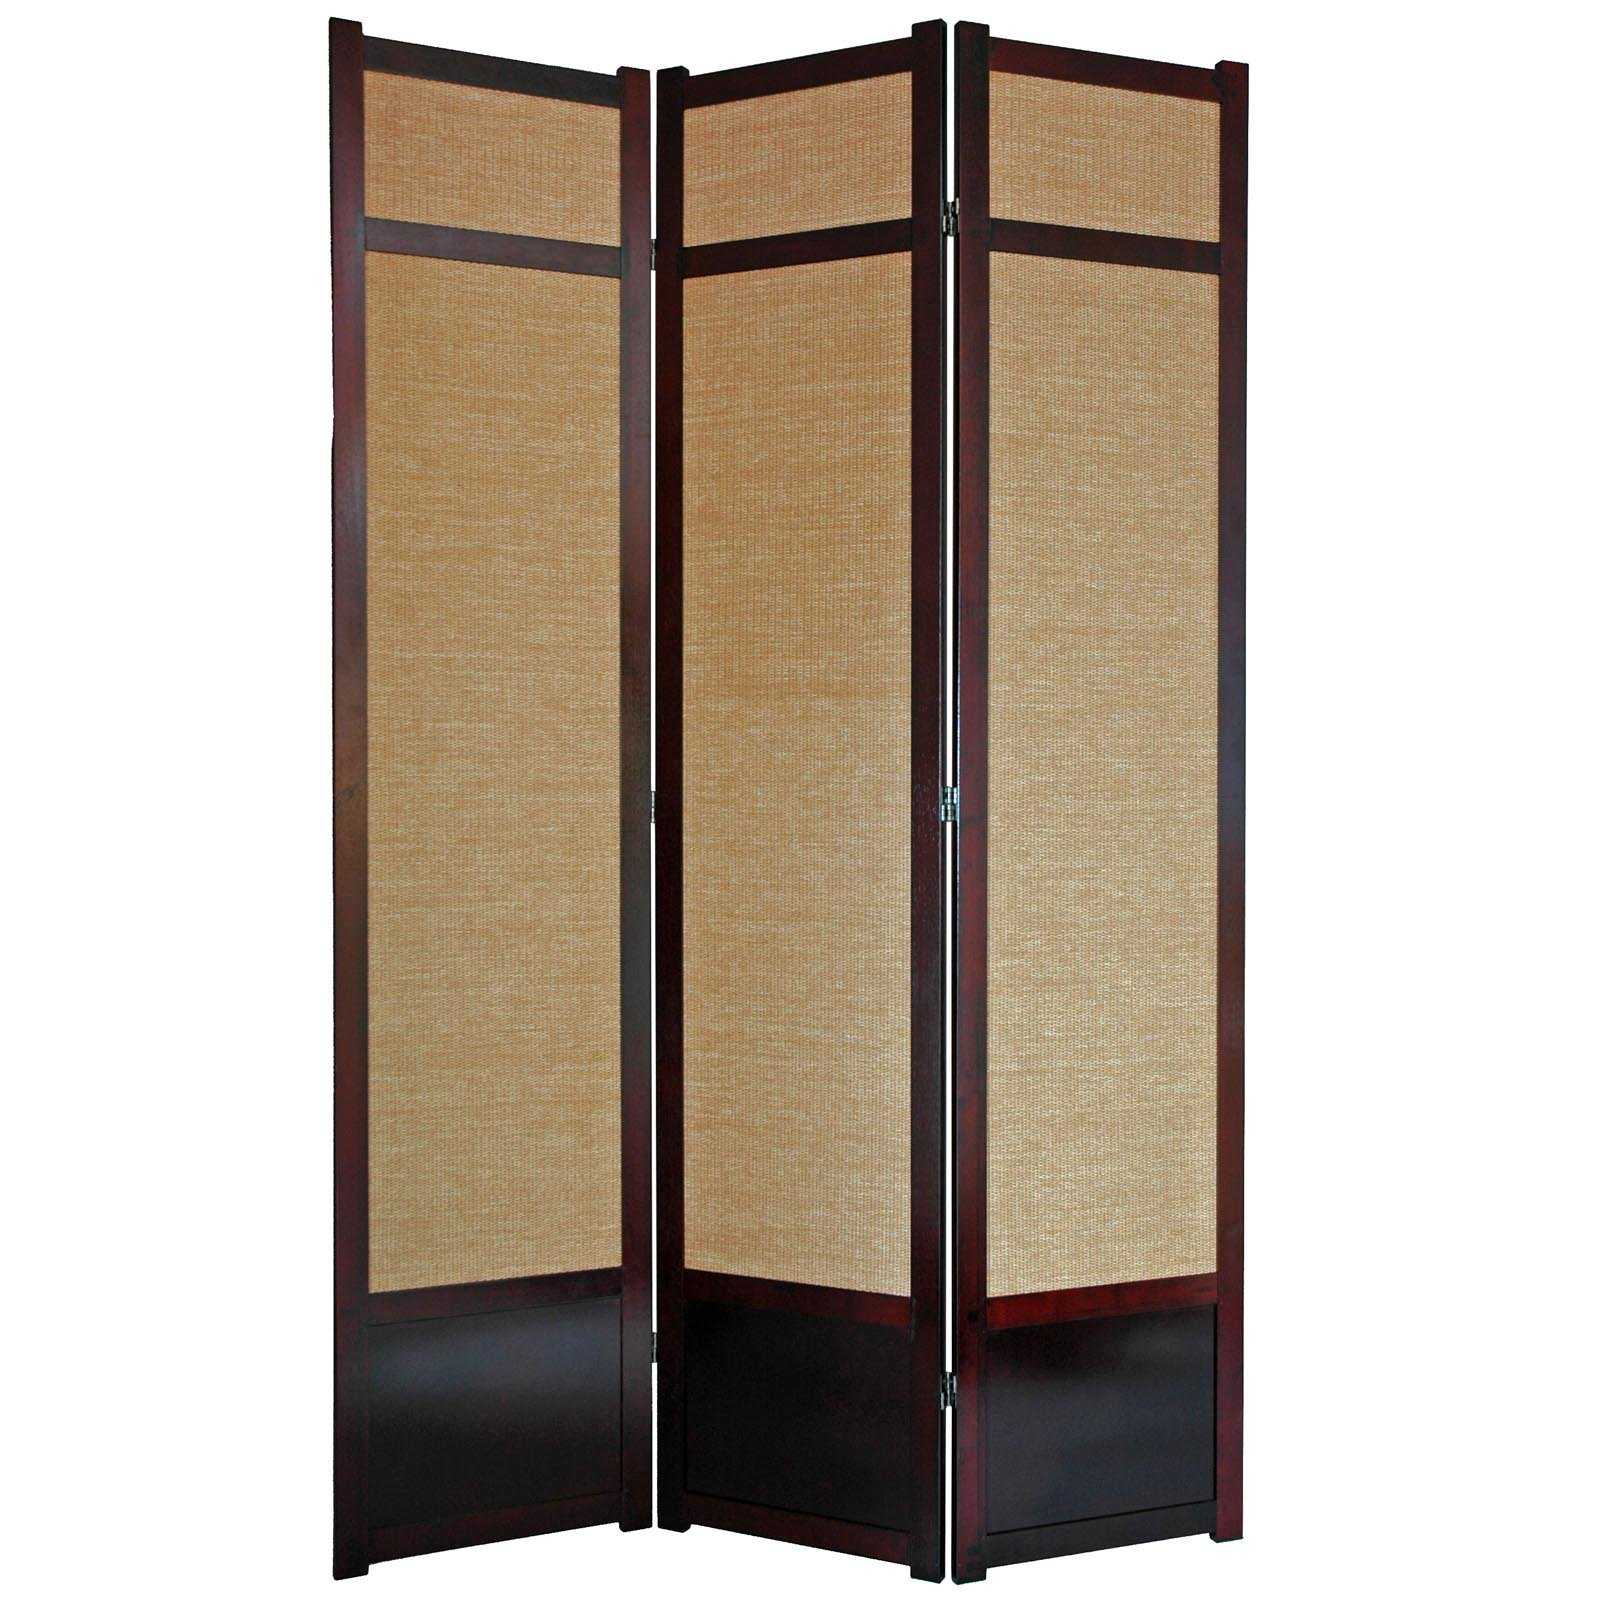 Oriental Furniture Jute Fiber Shoji Screen Room Divider 84 Inch    Walmart.com